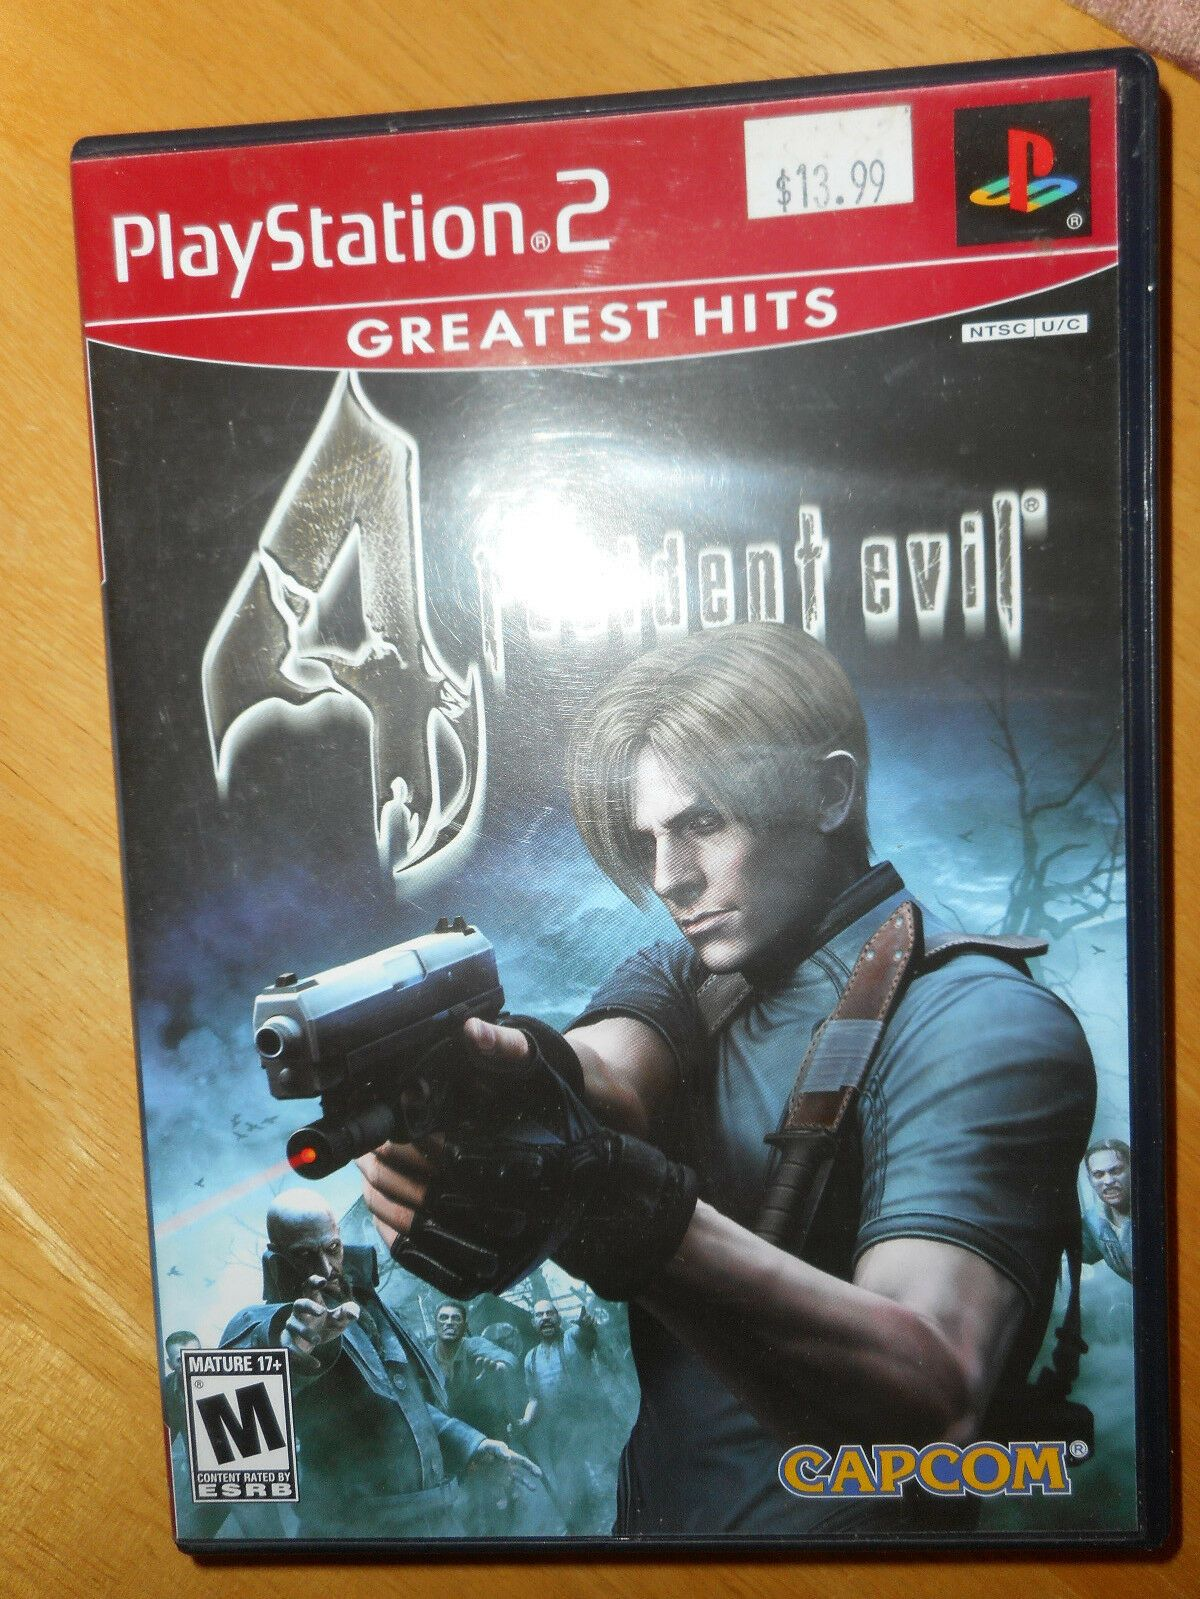 Resident Evil 4 Greatest Hits For Playstation 2 Game Disc Box